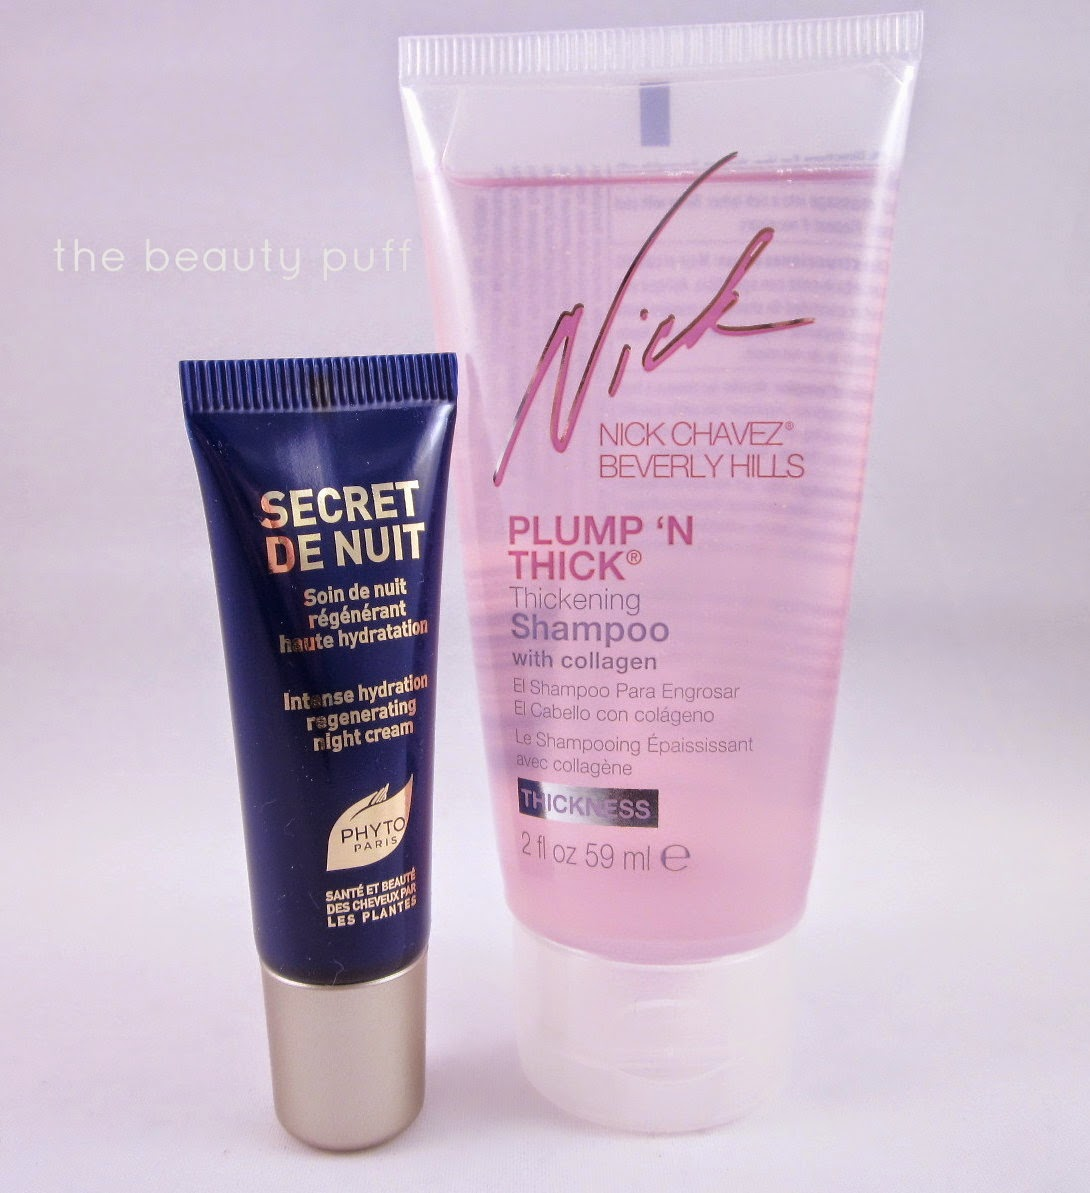 milly game face haircare beauty.com - the beauty puff